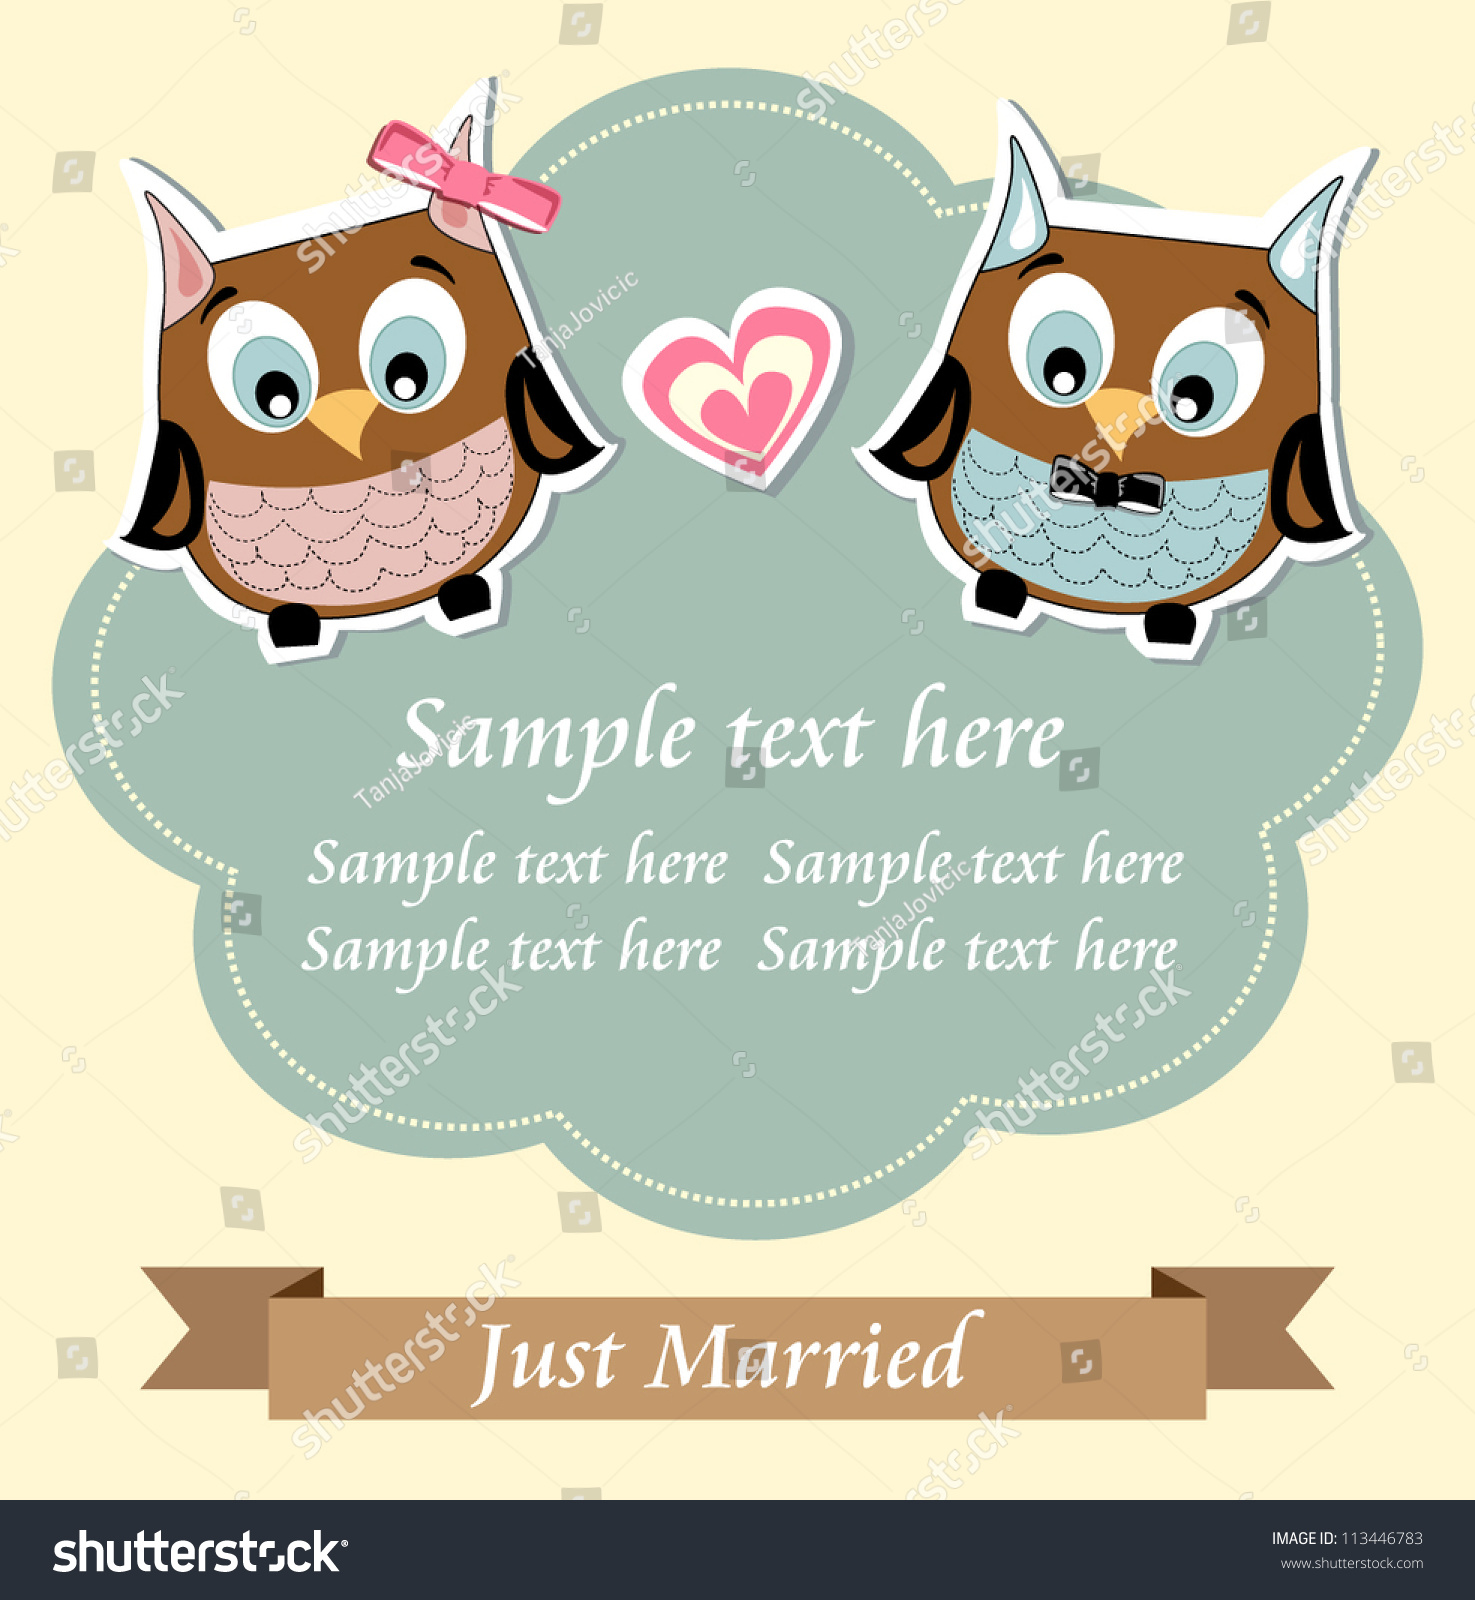 Cute Owls Just Married Wedding Invitation Card Stock